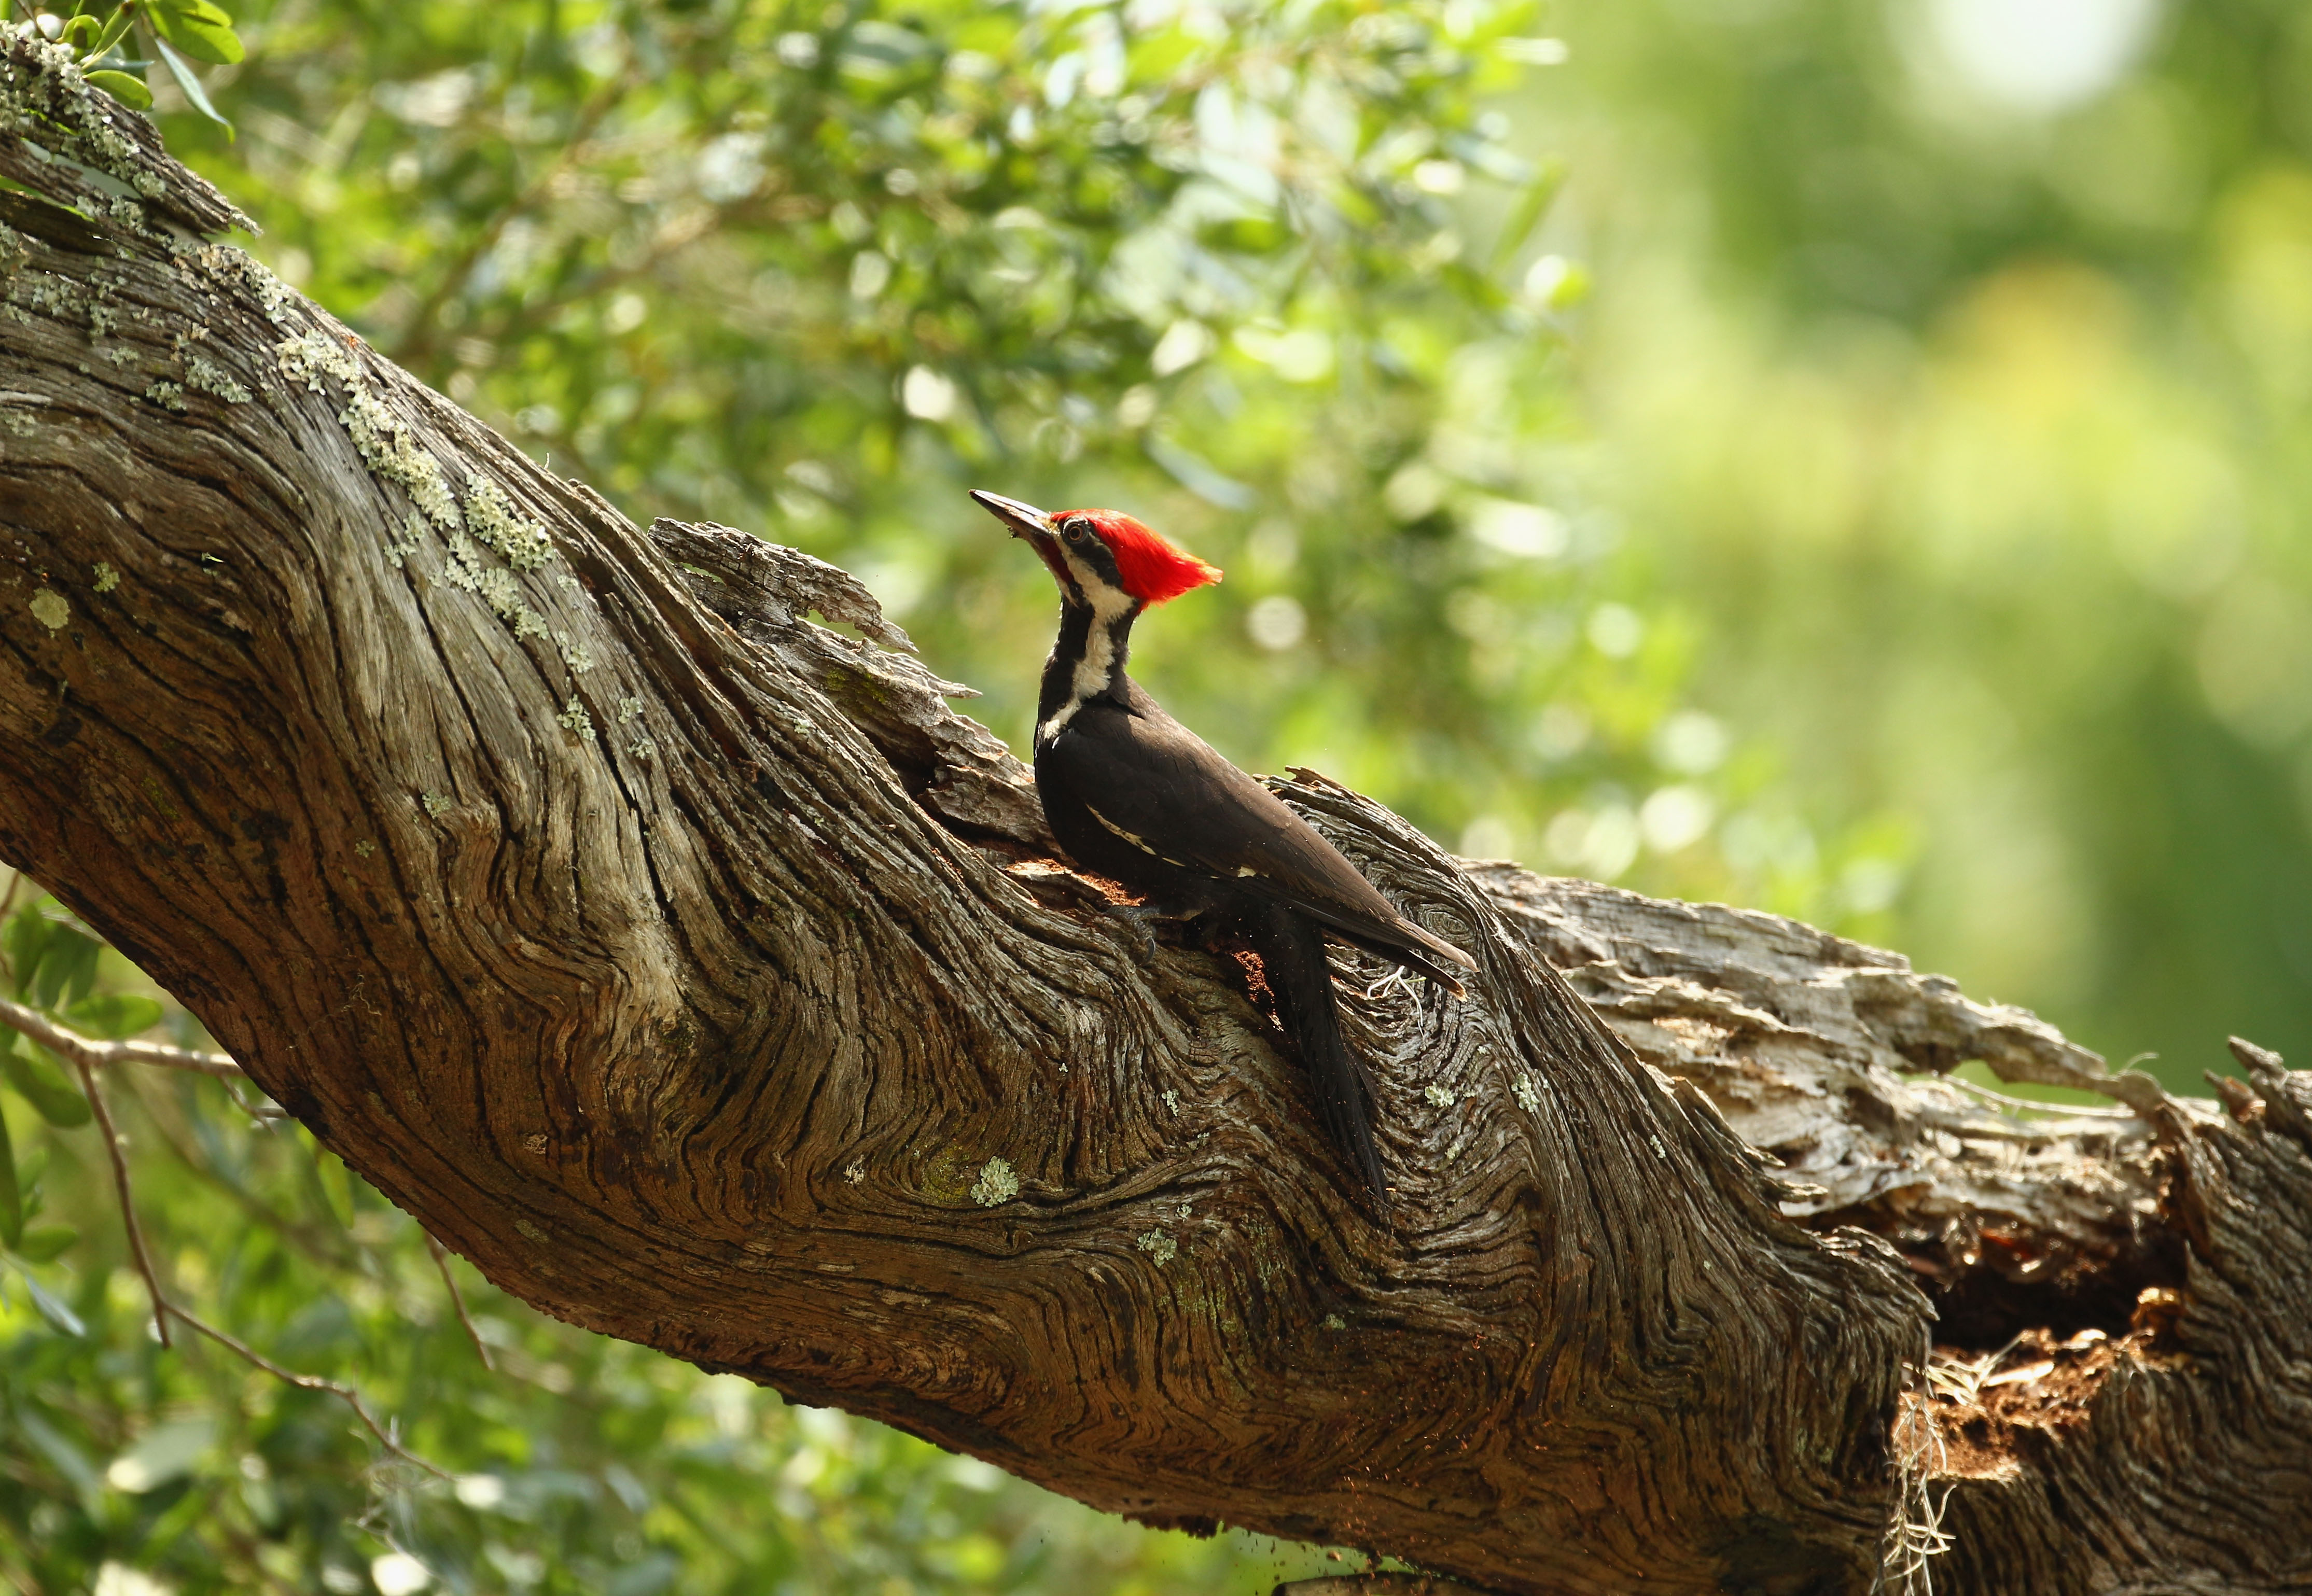 The Weasel Riding A Woodpecker Memes Are Here Because This Is What Internet Was Made For PHOTOS